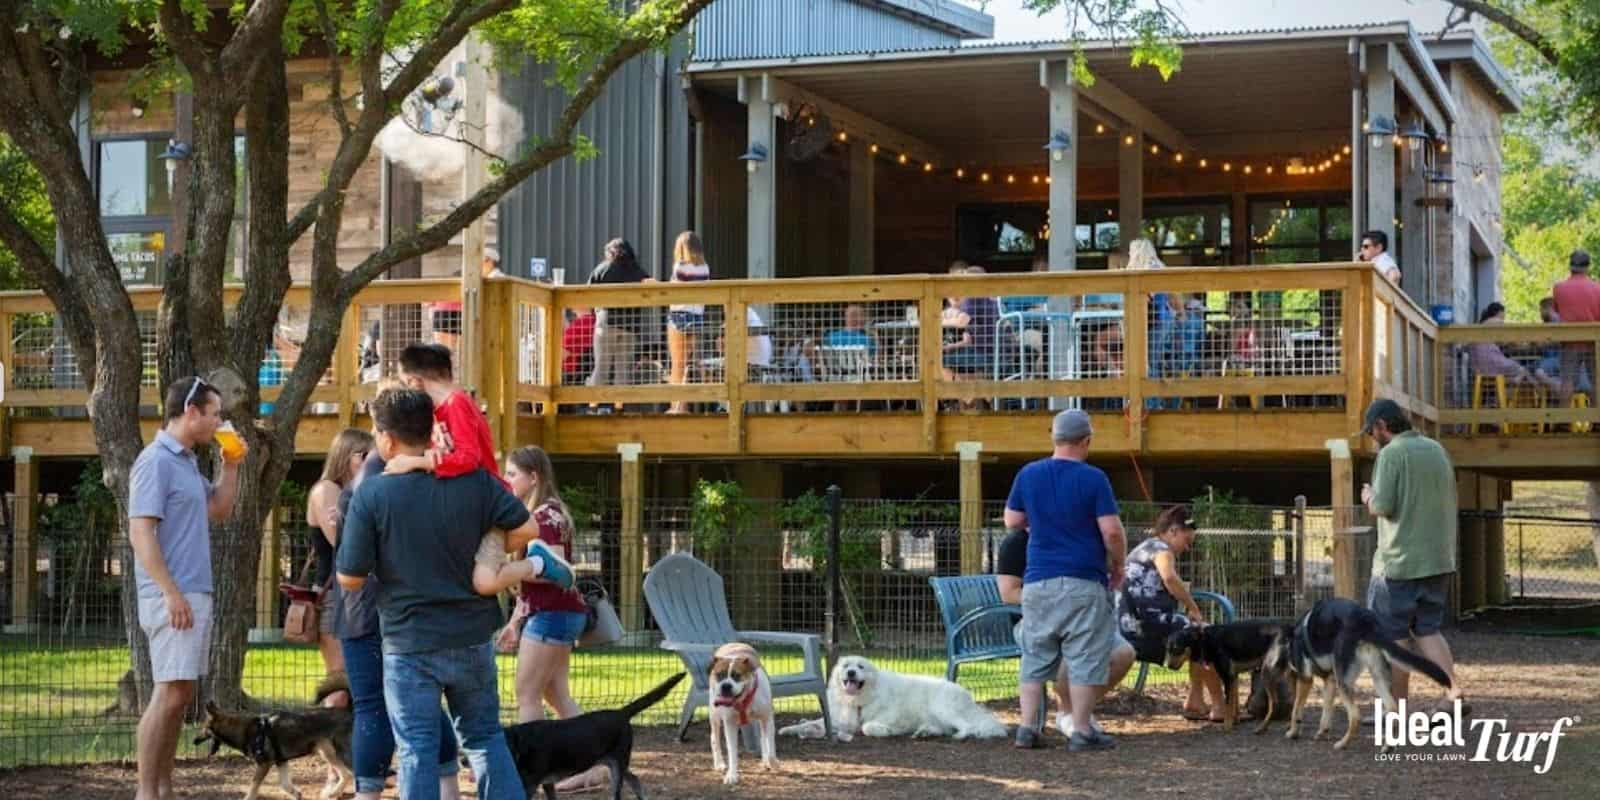 6. The Shack's Dining & Dog Park